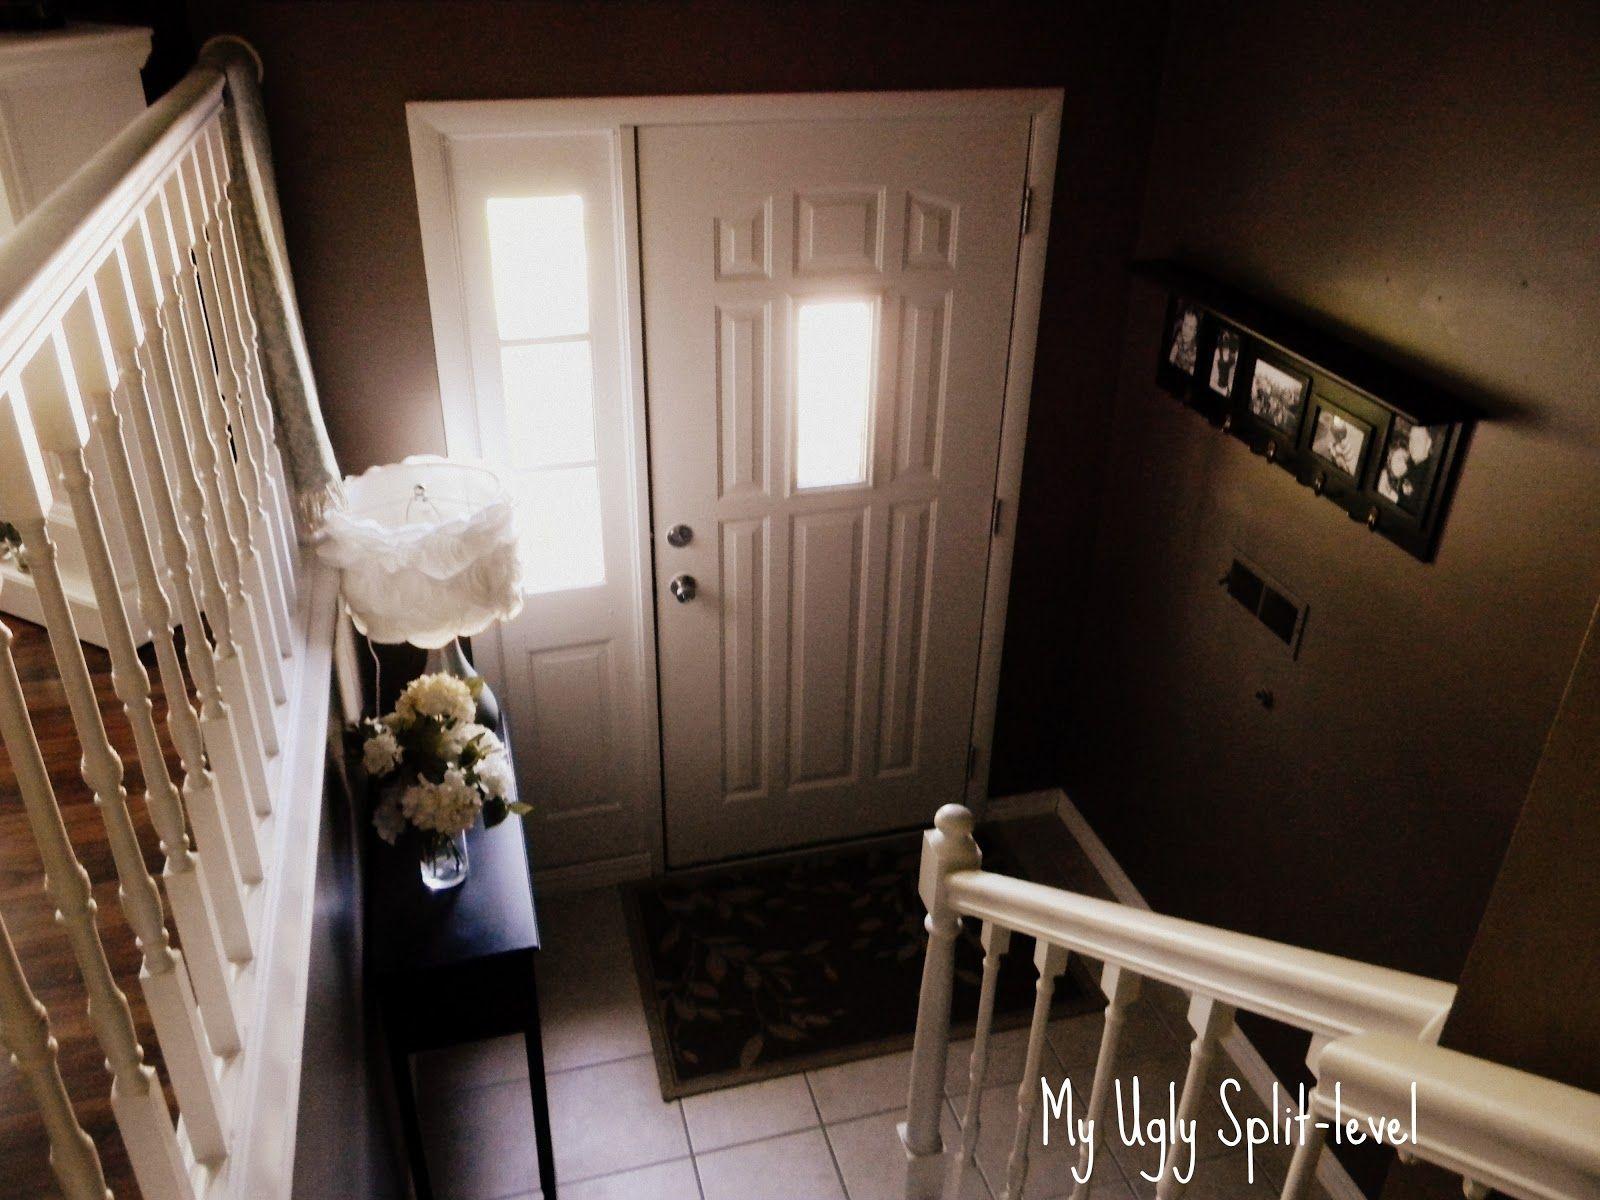 Pin on Favorite Places and Spaces Raised Ranch Entryway Ideas Home Design on mobile home entryway ideas, ranch house front design ideas, ceiling lighting design ideas, raised ranch entryway ideas, ranch home porch ideas, ranch home exterior color ideas, ranch home remodeling ideas, outdoor stairs design ideas, raised ranch interior paint ideas, raised ranch exterior ideas,